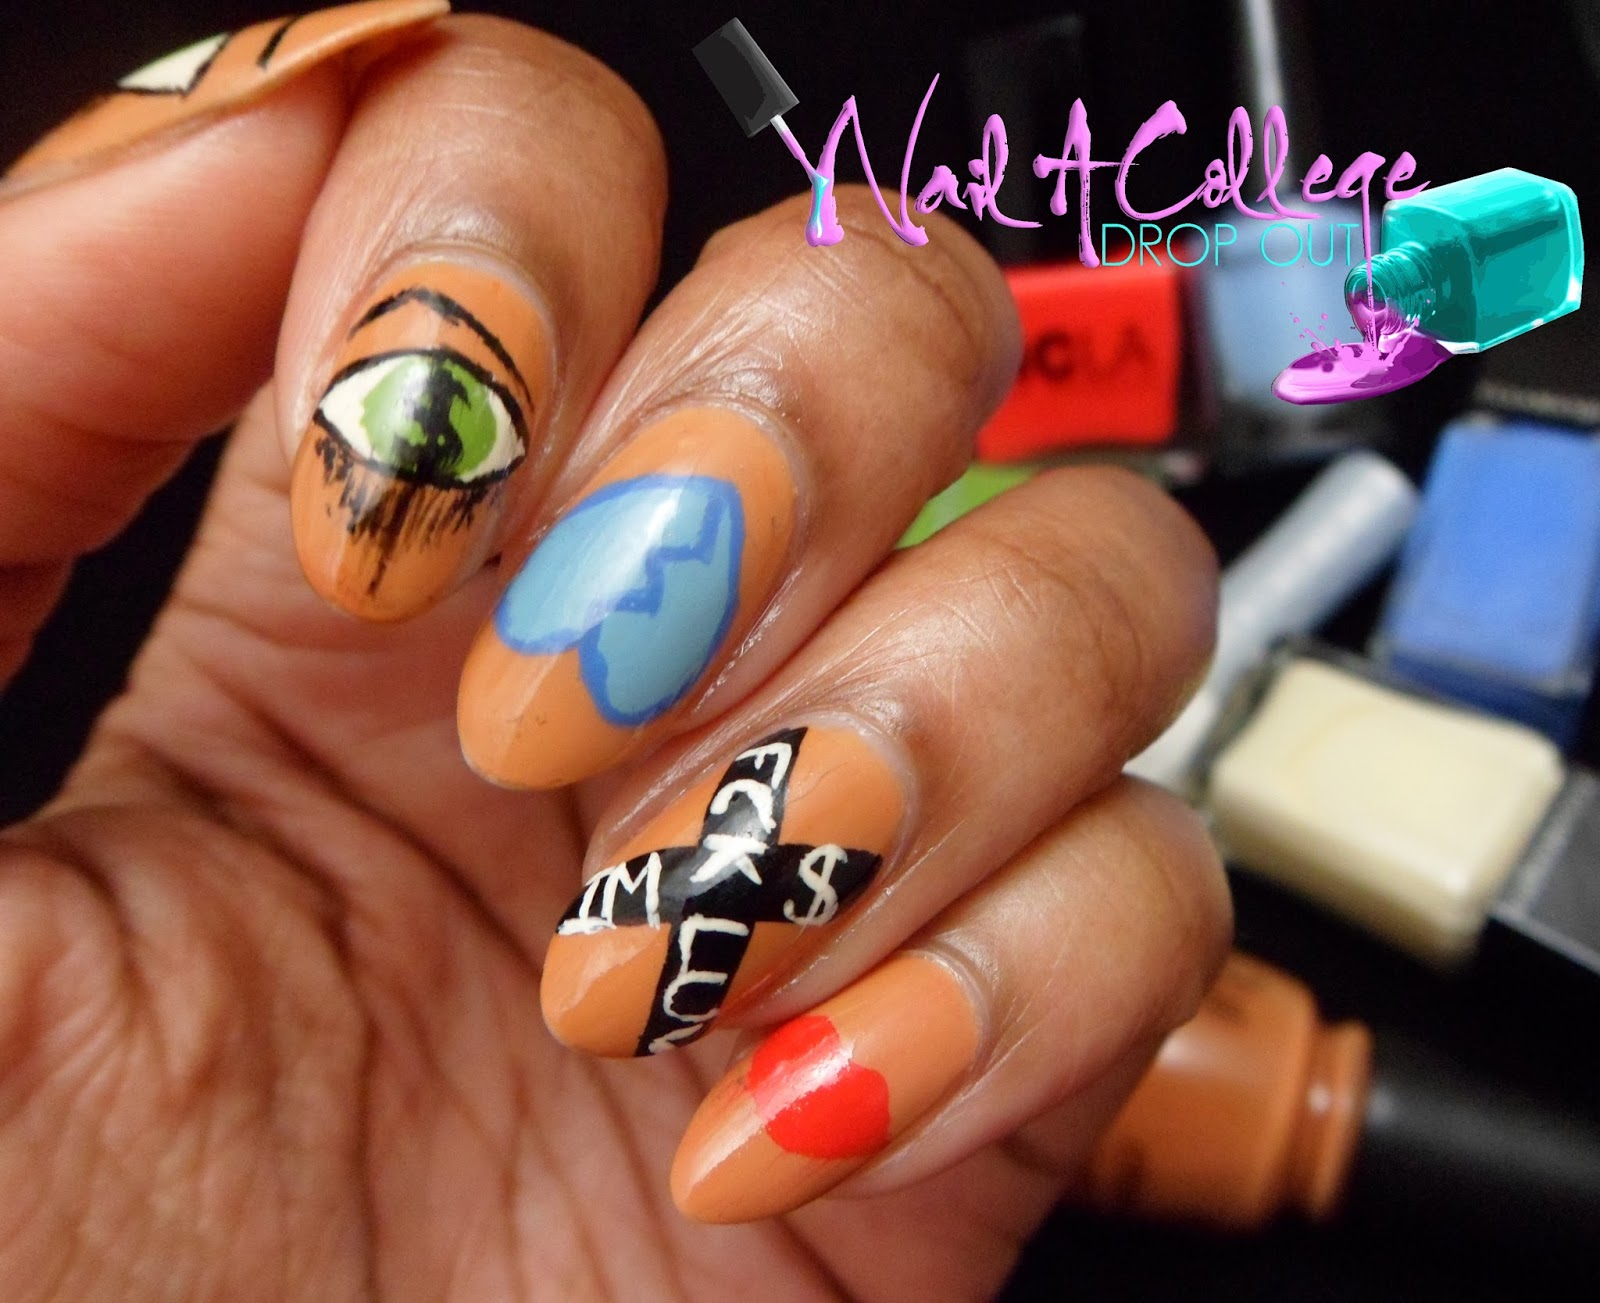 Nail a college drop out when nails imitate art sue tsai probably seen tons of nail art inspired by sue tsai and loved it so i thought id try to finally execute a mani based on a piece of her work as well prinsesfo Images